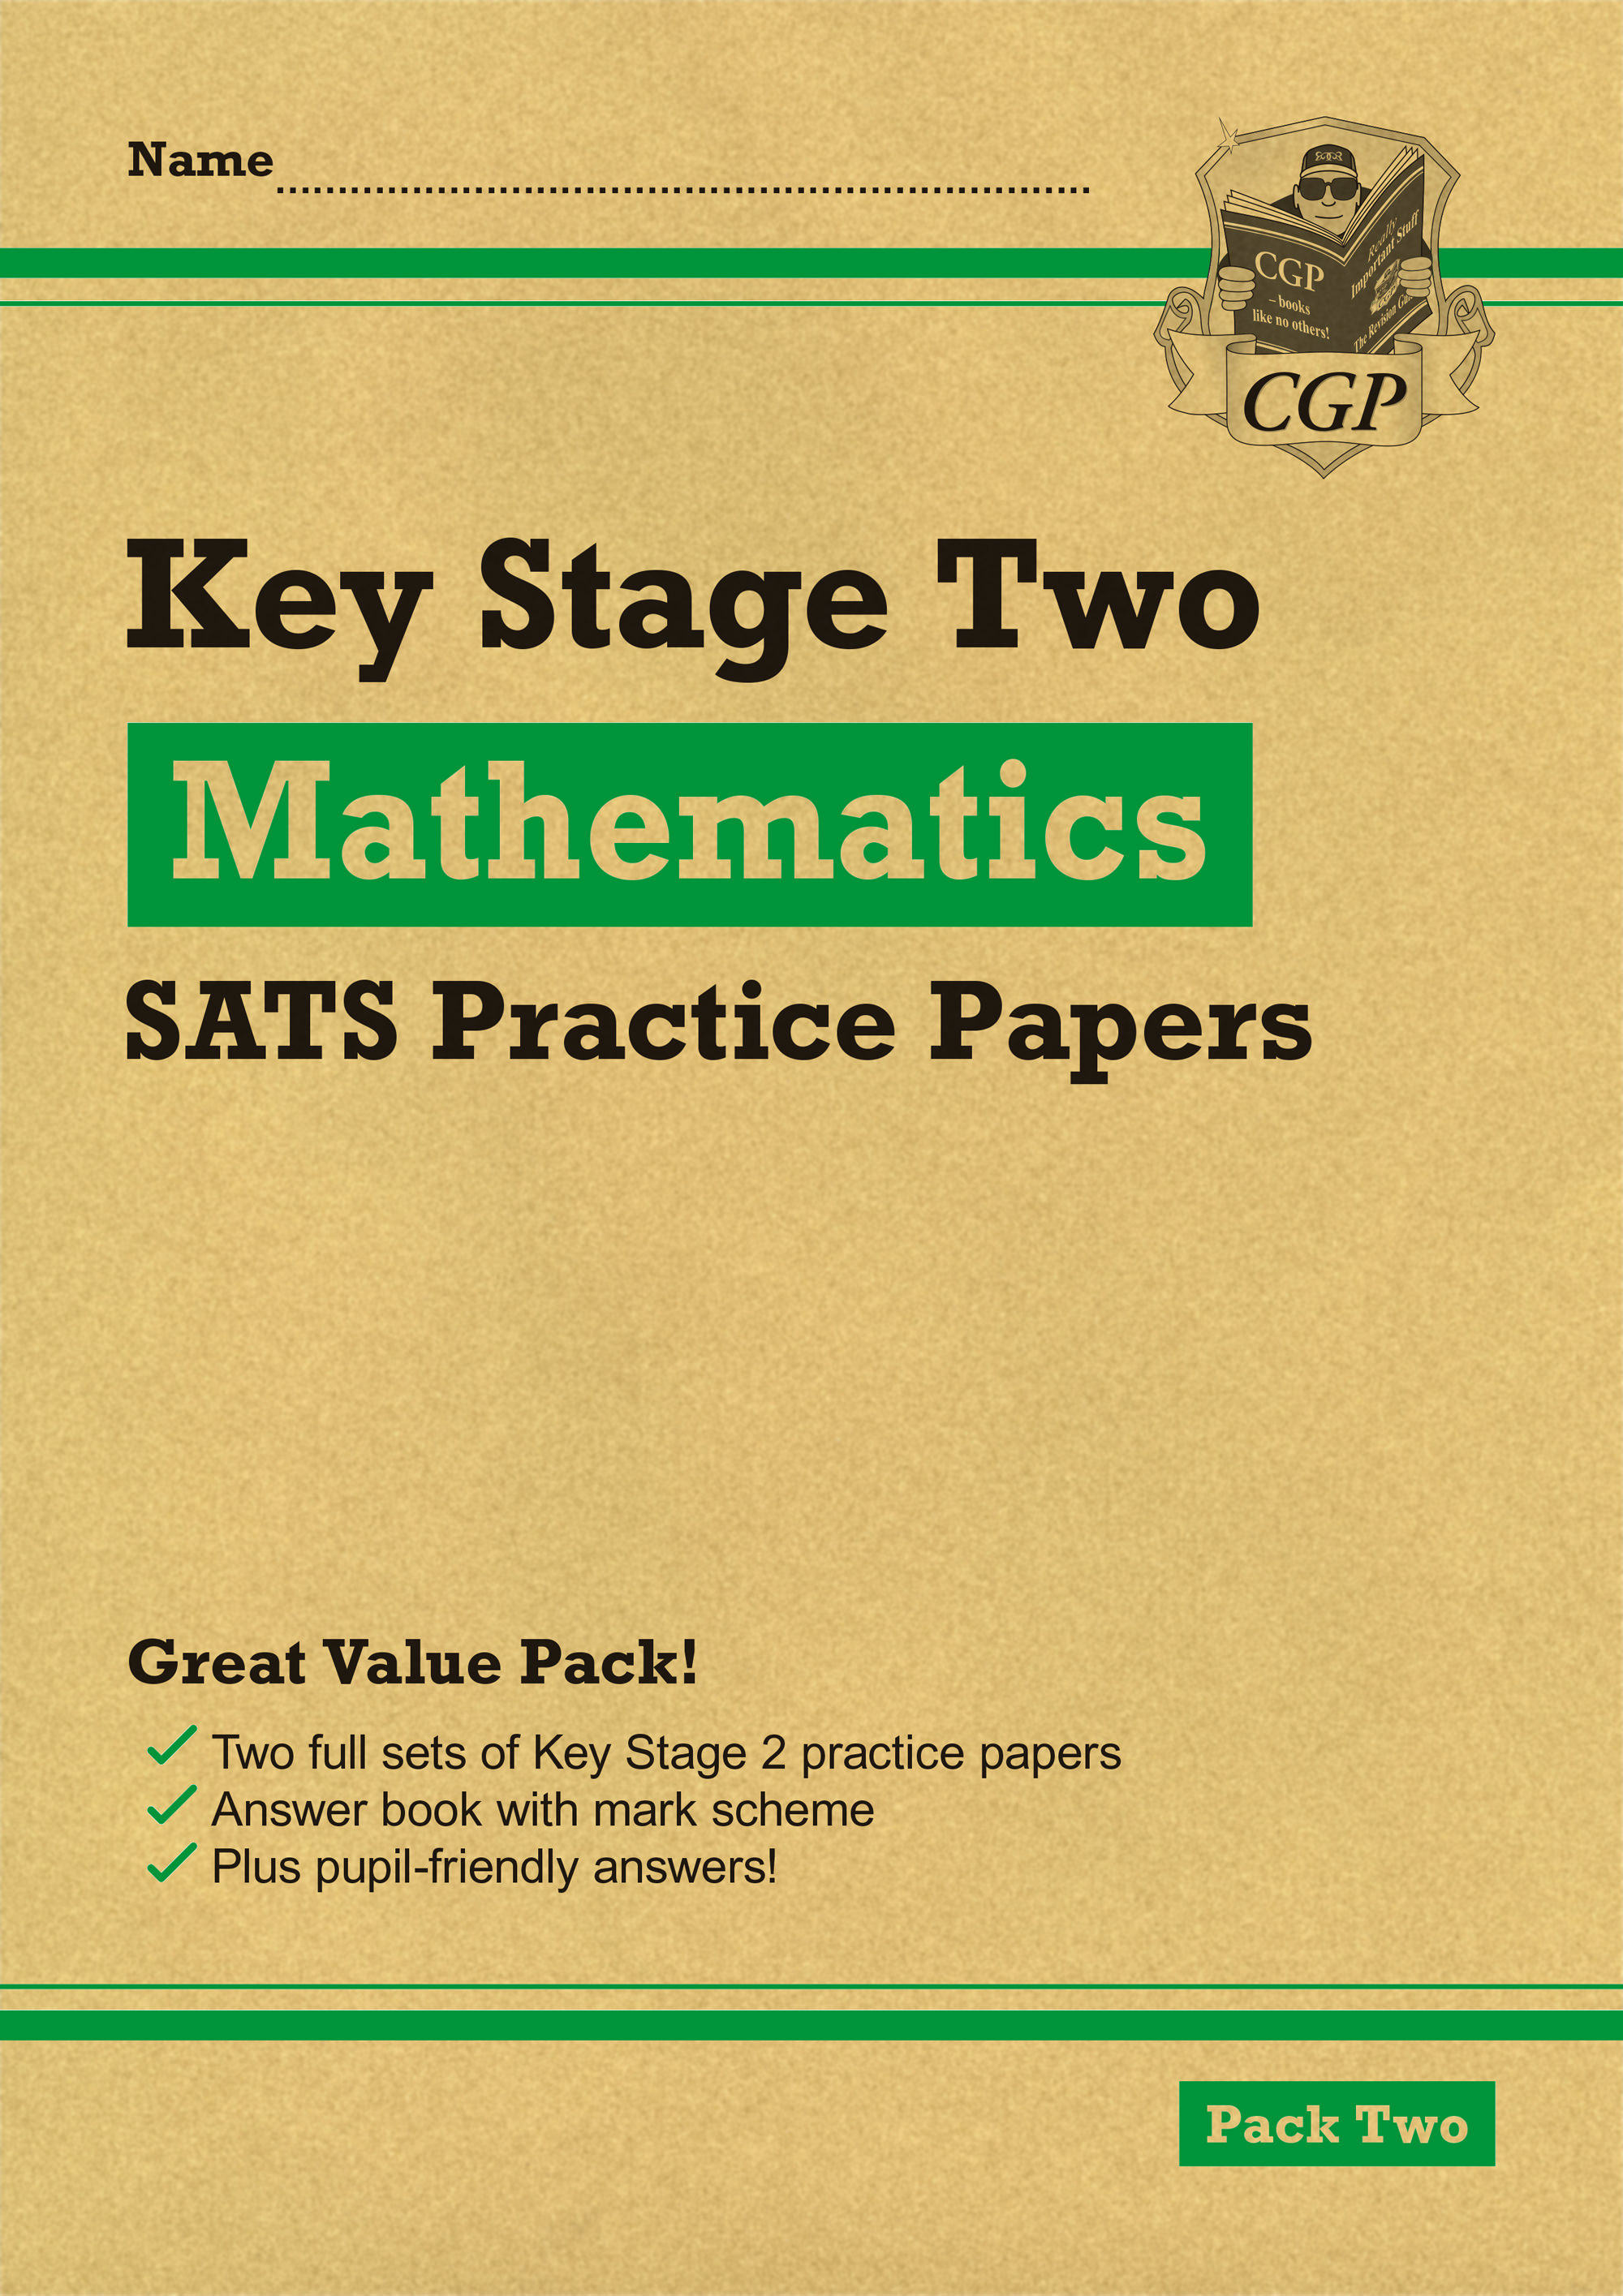 MHGP27 - New KS2 Maths SATS Practice Papers: Pack 2 (for the 2020 tests)